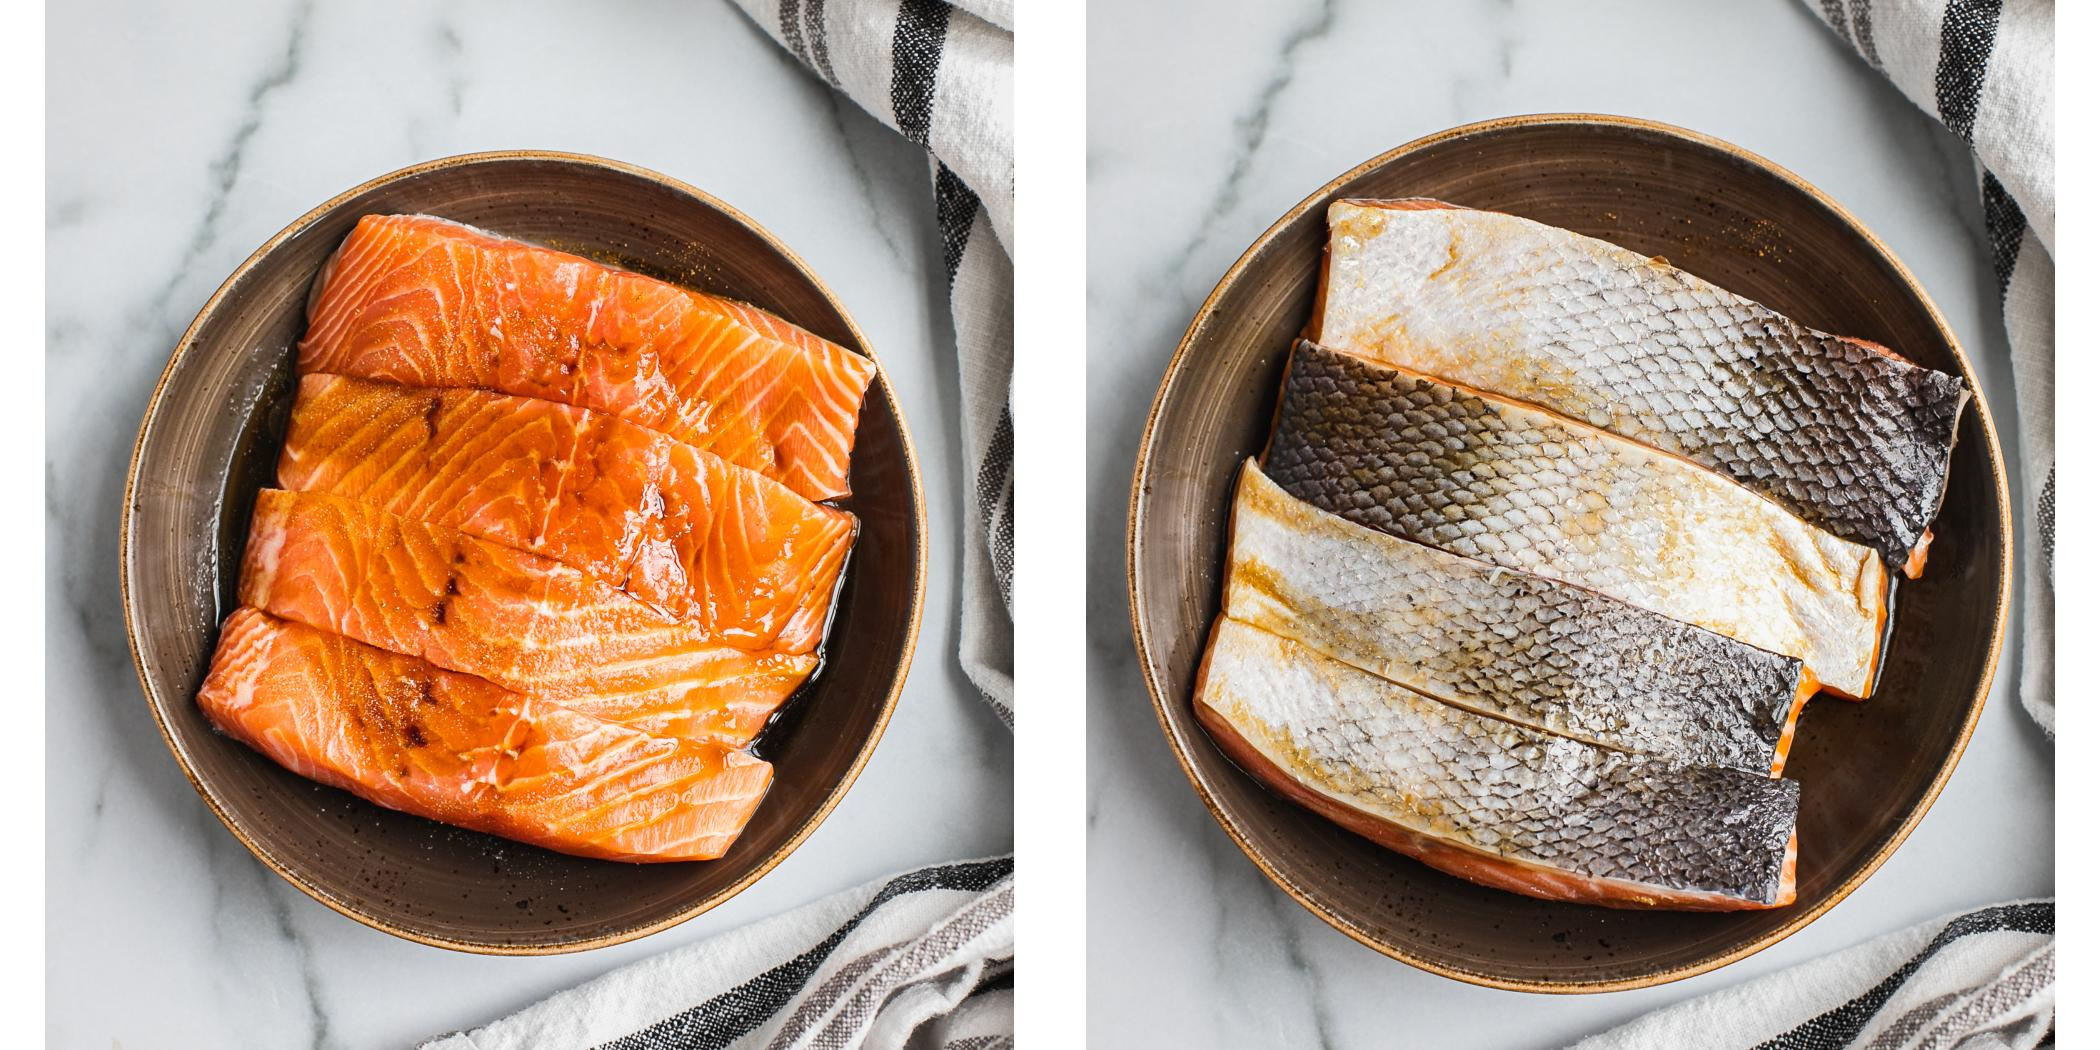 Instruction on how to marinate salmon to pan sear for crispy teriyaki salmon.